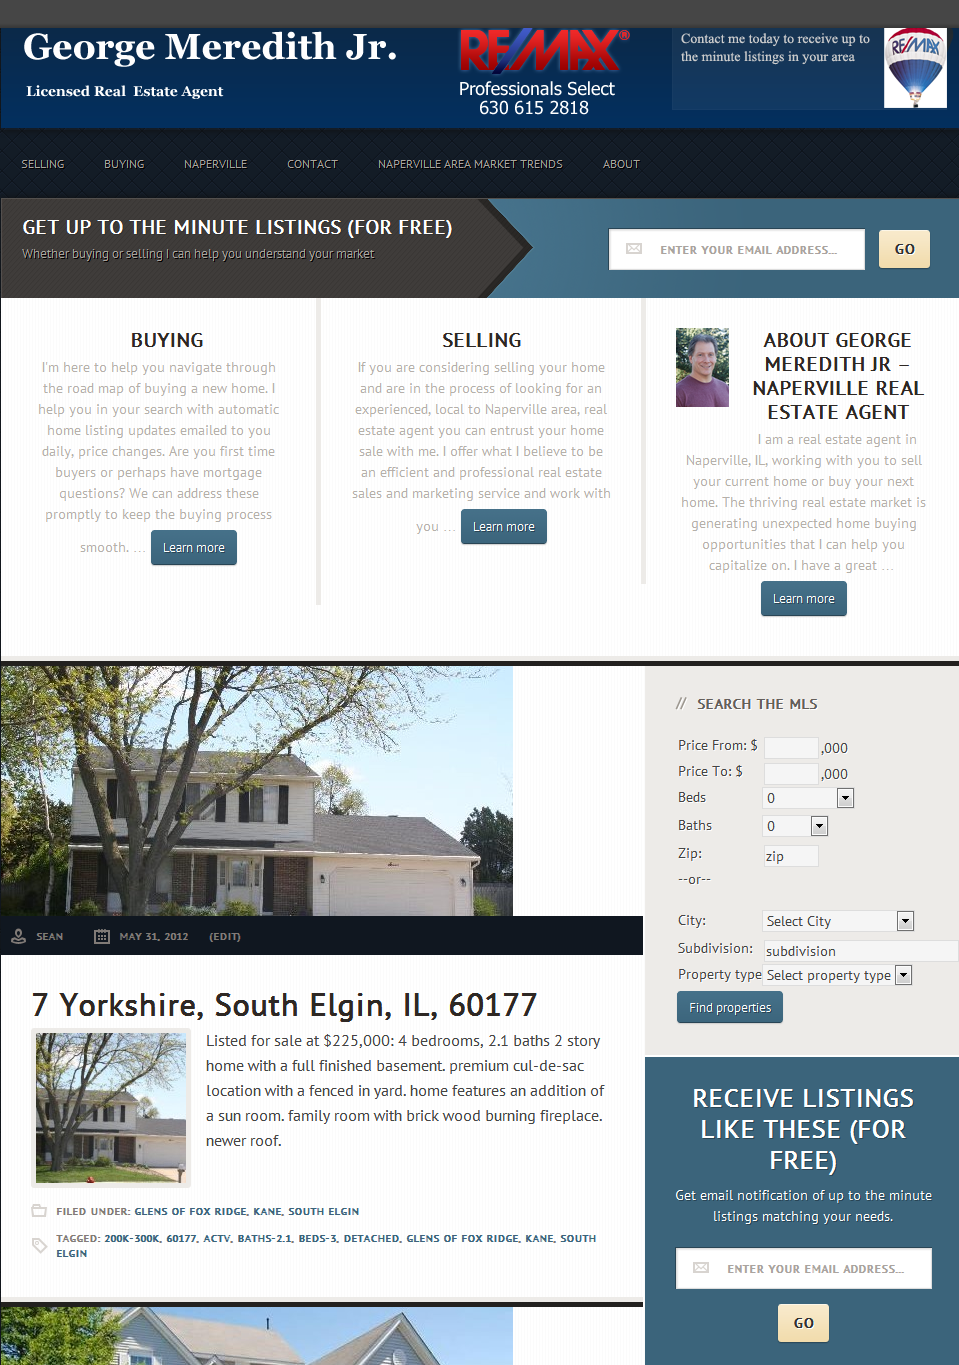 Sean Hayes - professional WordPress consulting